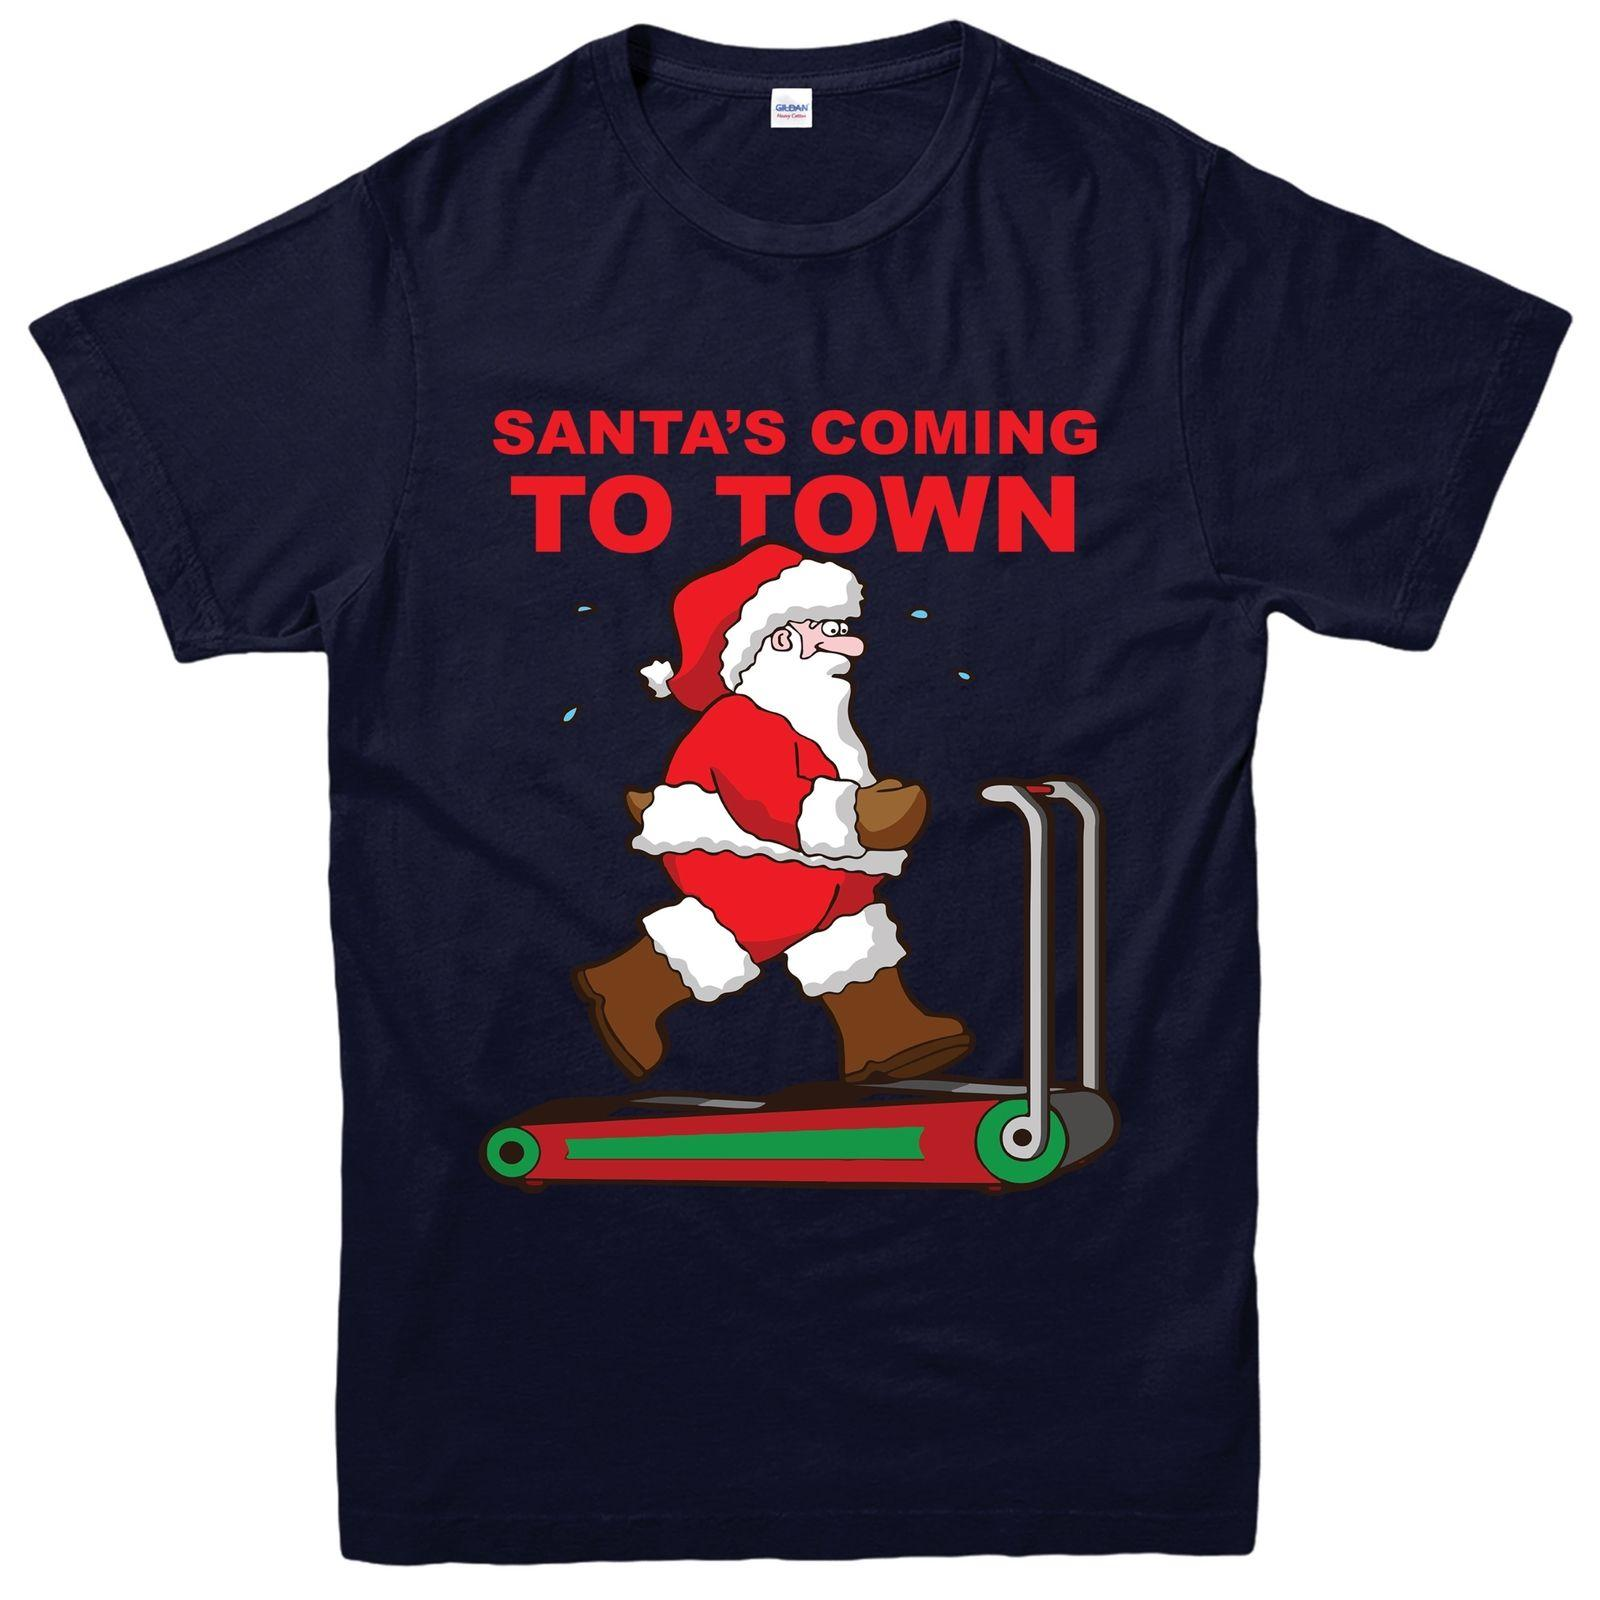 348d763be Santa Christmas T Shirt, Santa Workout Exercise Festive Adult & Kids Tee  Top Funny Tee Shirt Buy T Shirt Designs From Shadowtshirt, $13.19|  DHgate.Com